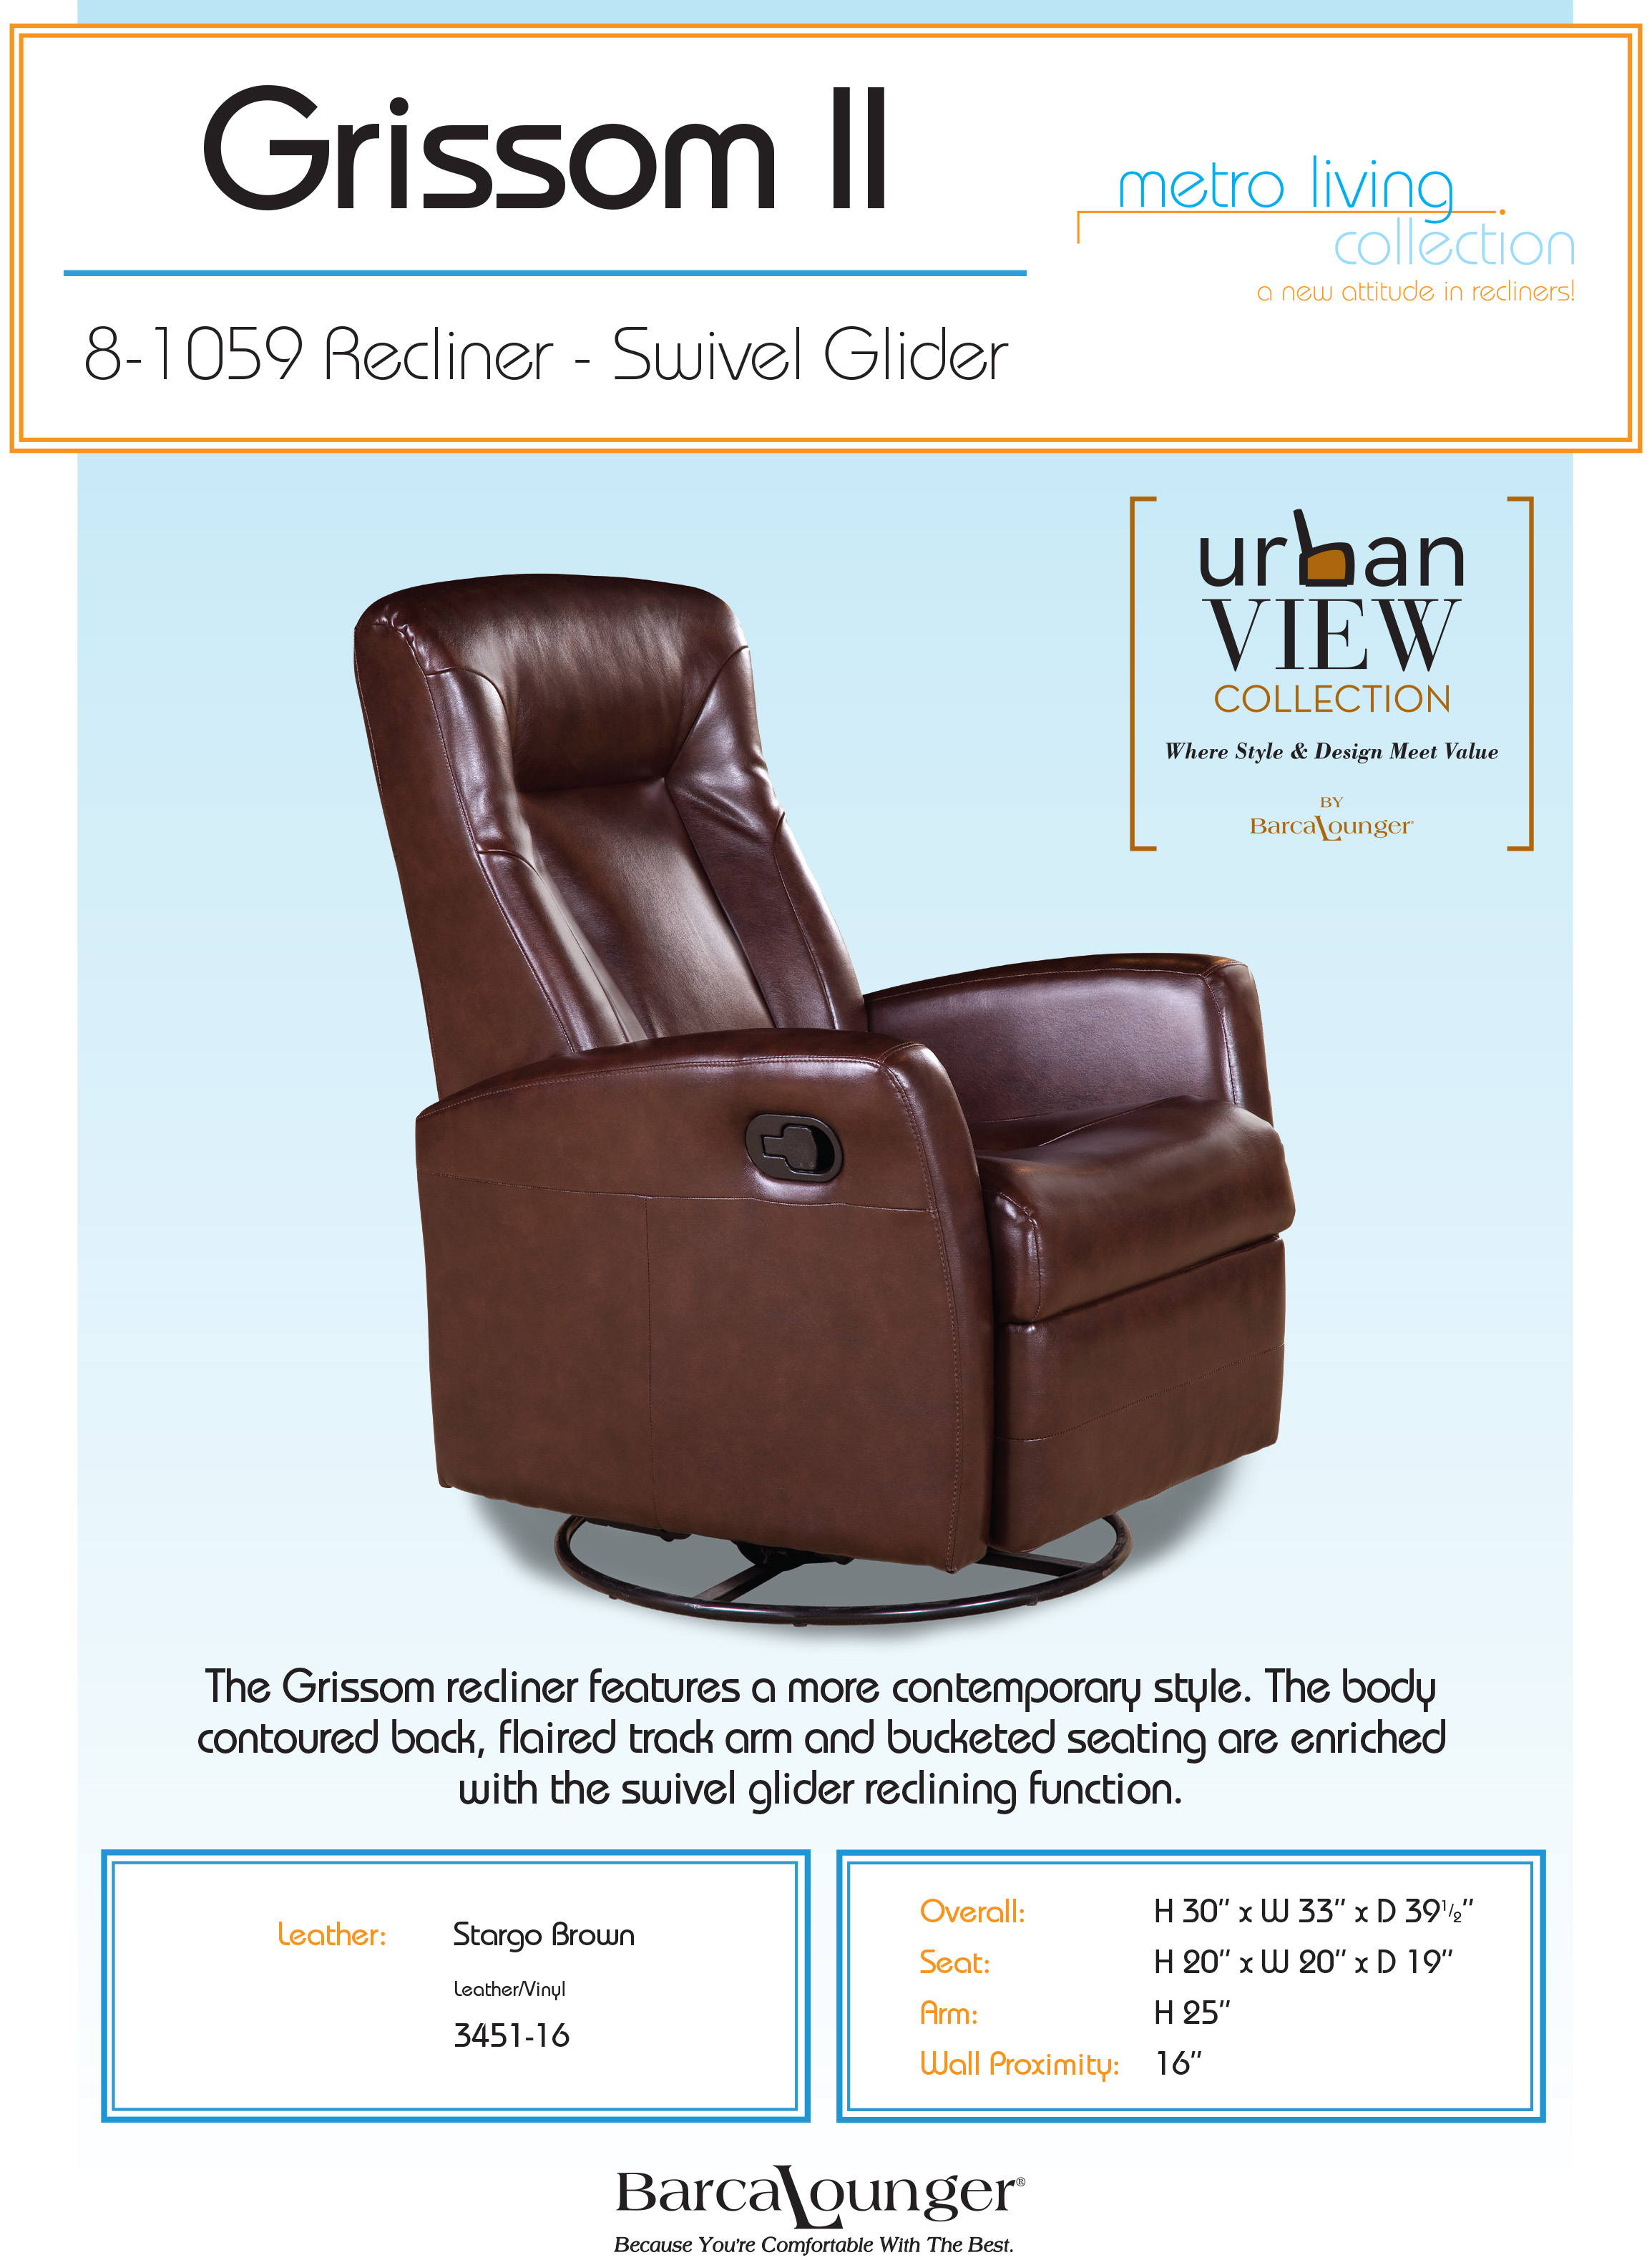 Barcalounger Eclipse II Leather Recliner Chair and Ottoman  sc 1 st  Vitalitywebb.com & Barcalounger Grissom II Swivel Glider Recliner Chair - Leather ... islam-shia.org